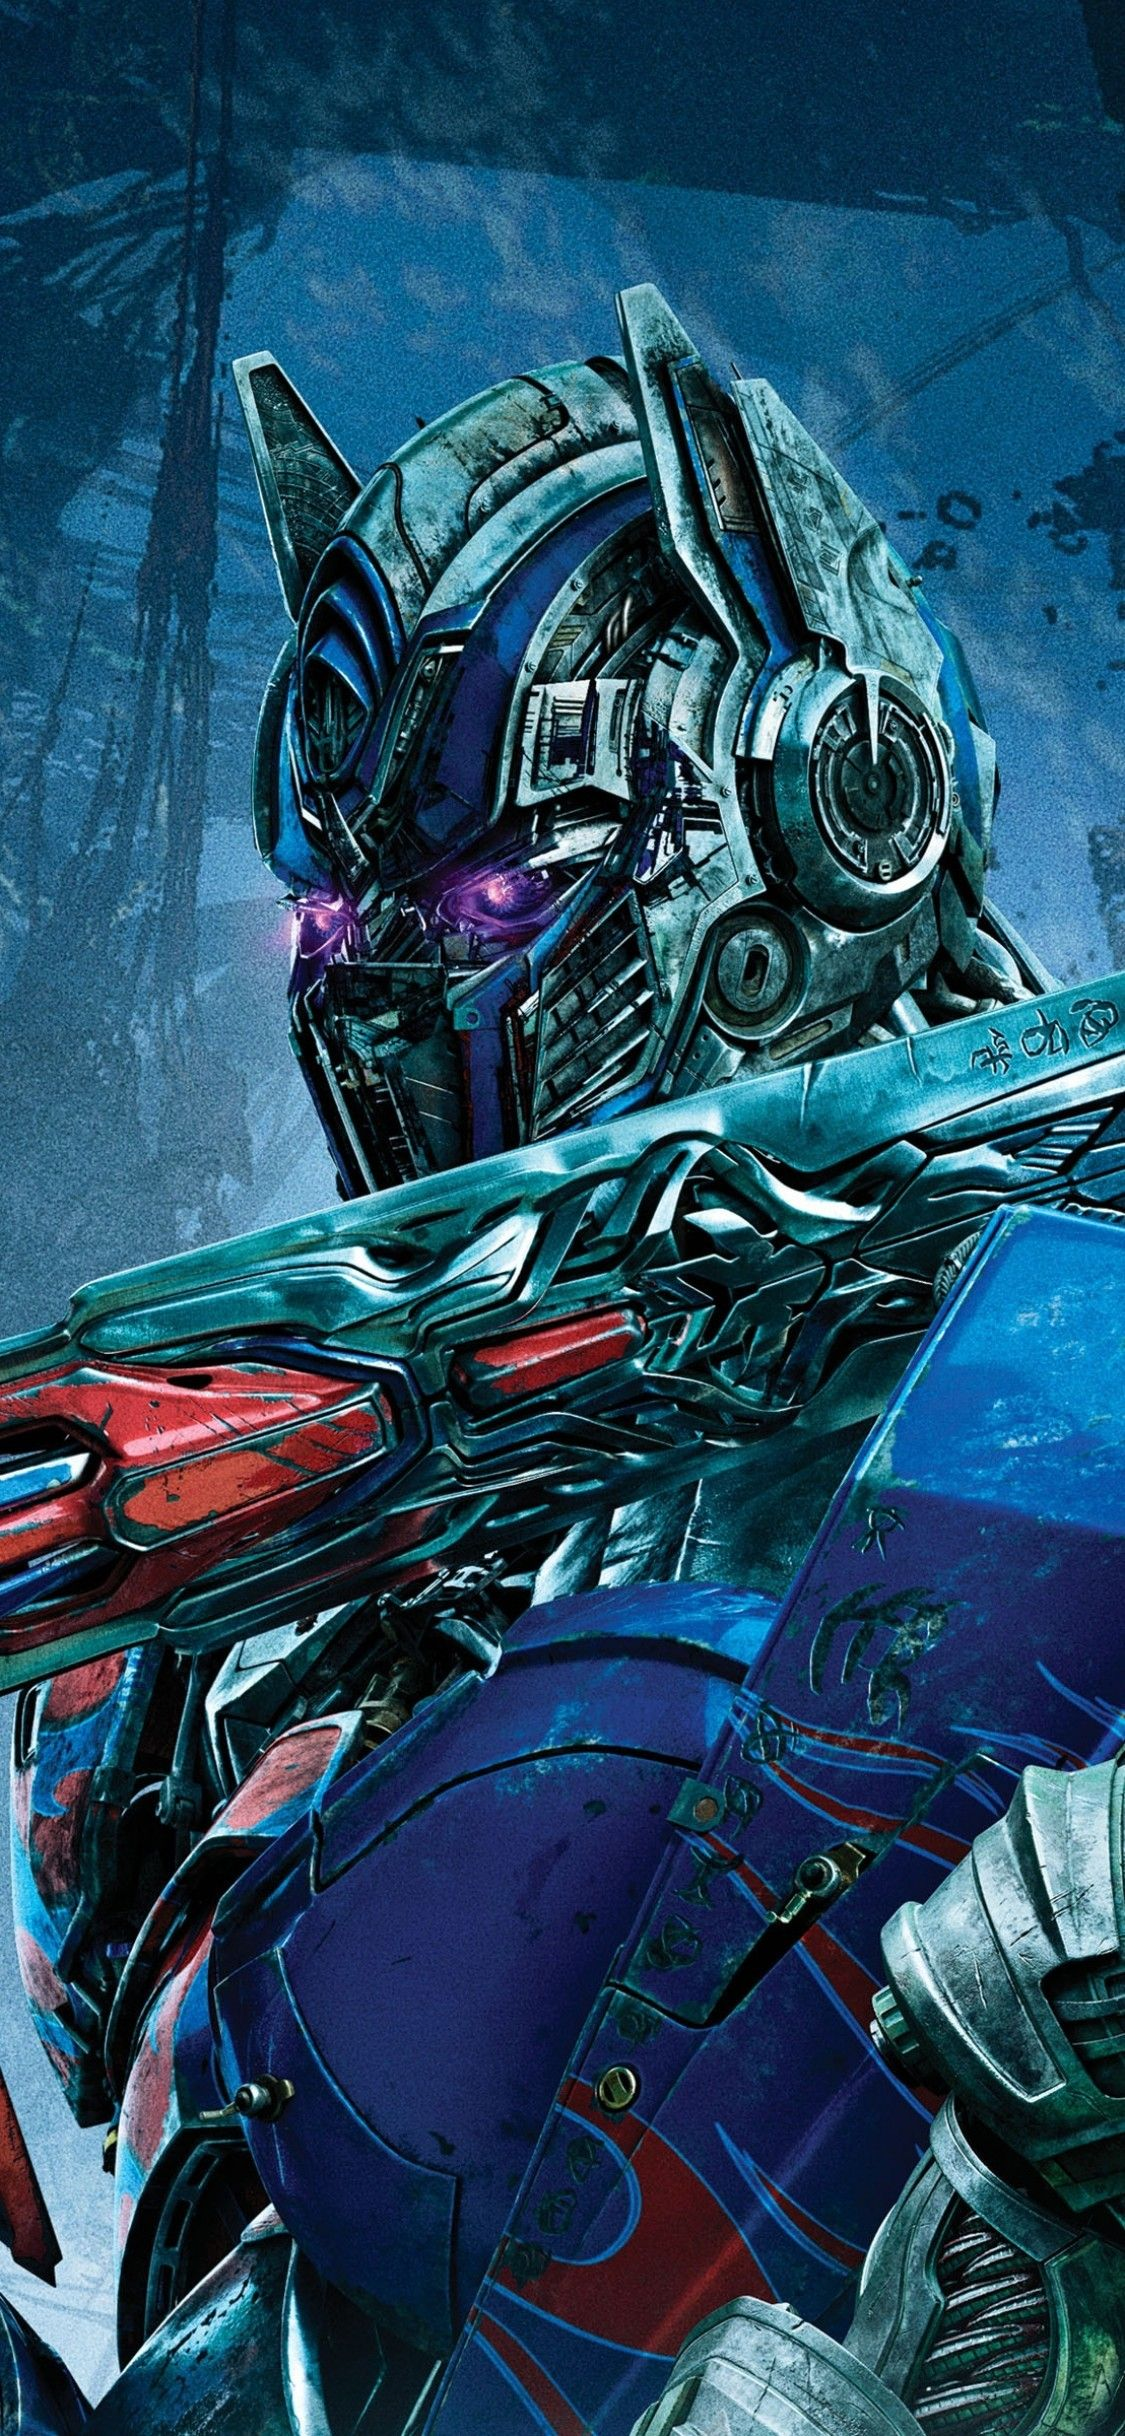 71 Transformers Iphone Wallpapers On Wallpaperplay Optimus Prime Wallpaper Optimus Prime Wallpaper Transformers Transformers Megatron